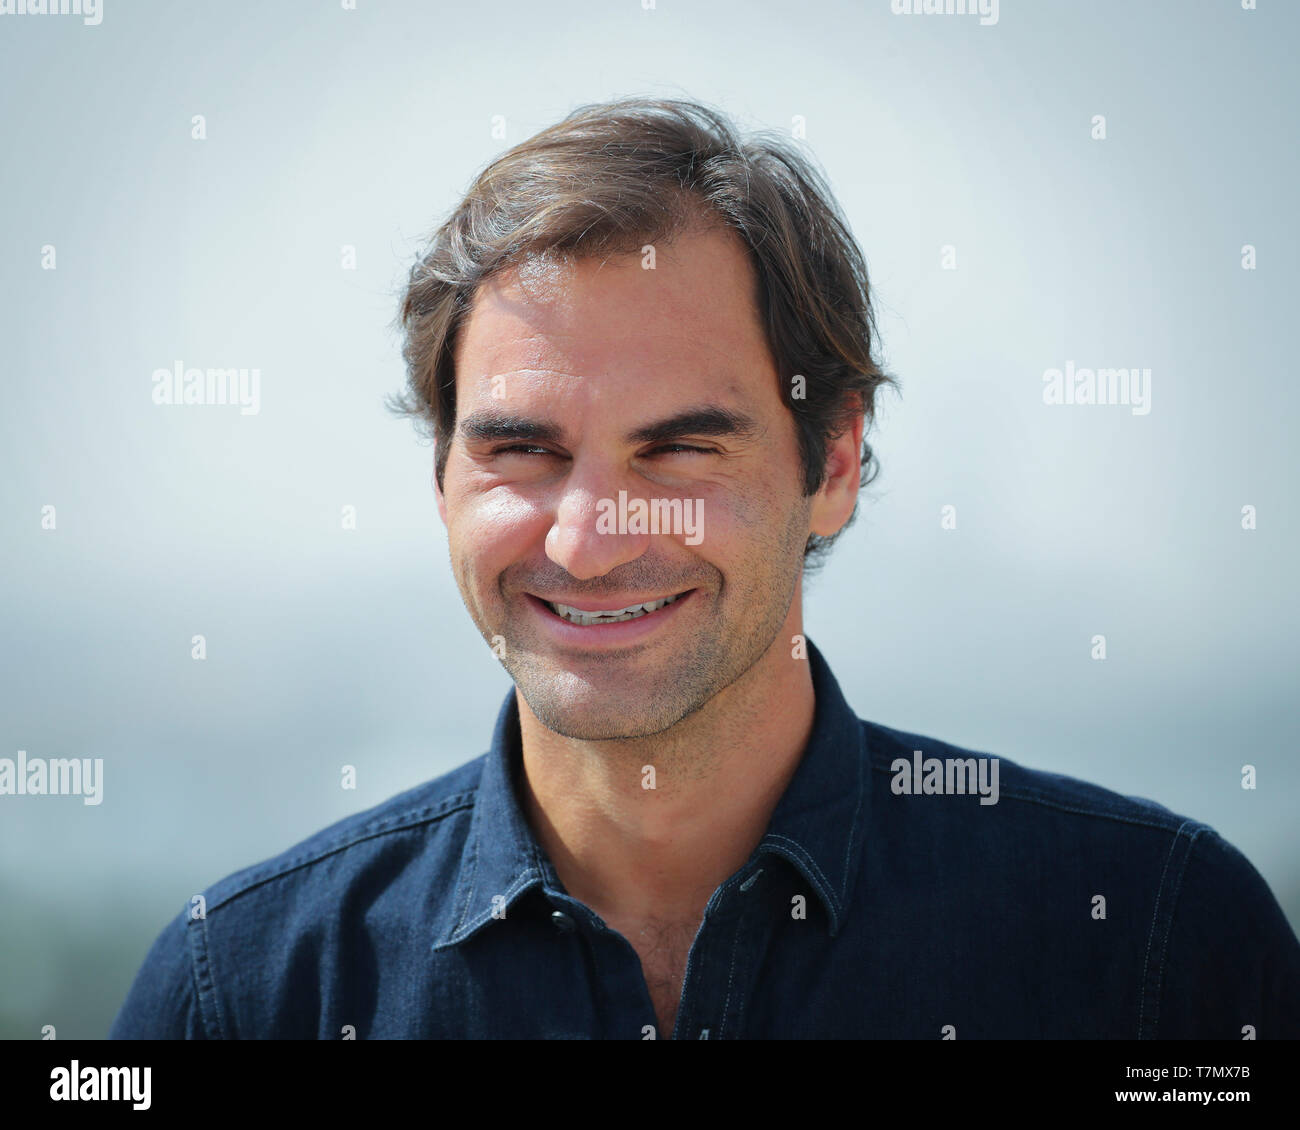 Swiss tennis player Roger Federer during press conference, Dubai, United Arab Emirates - Stock Image